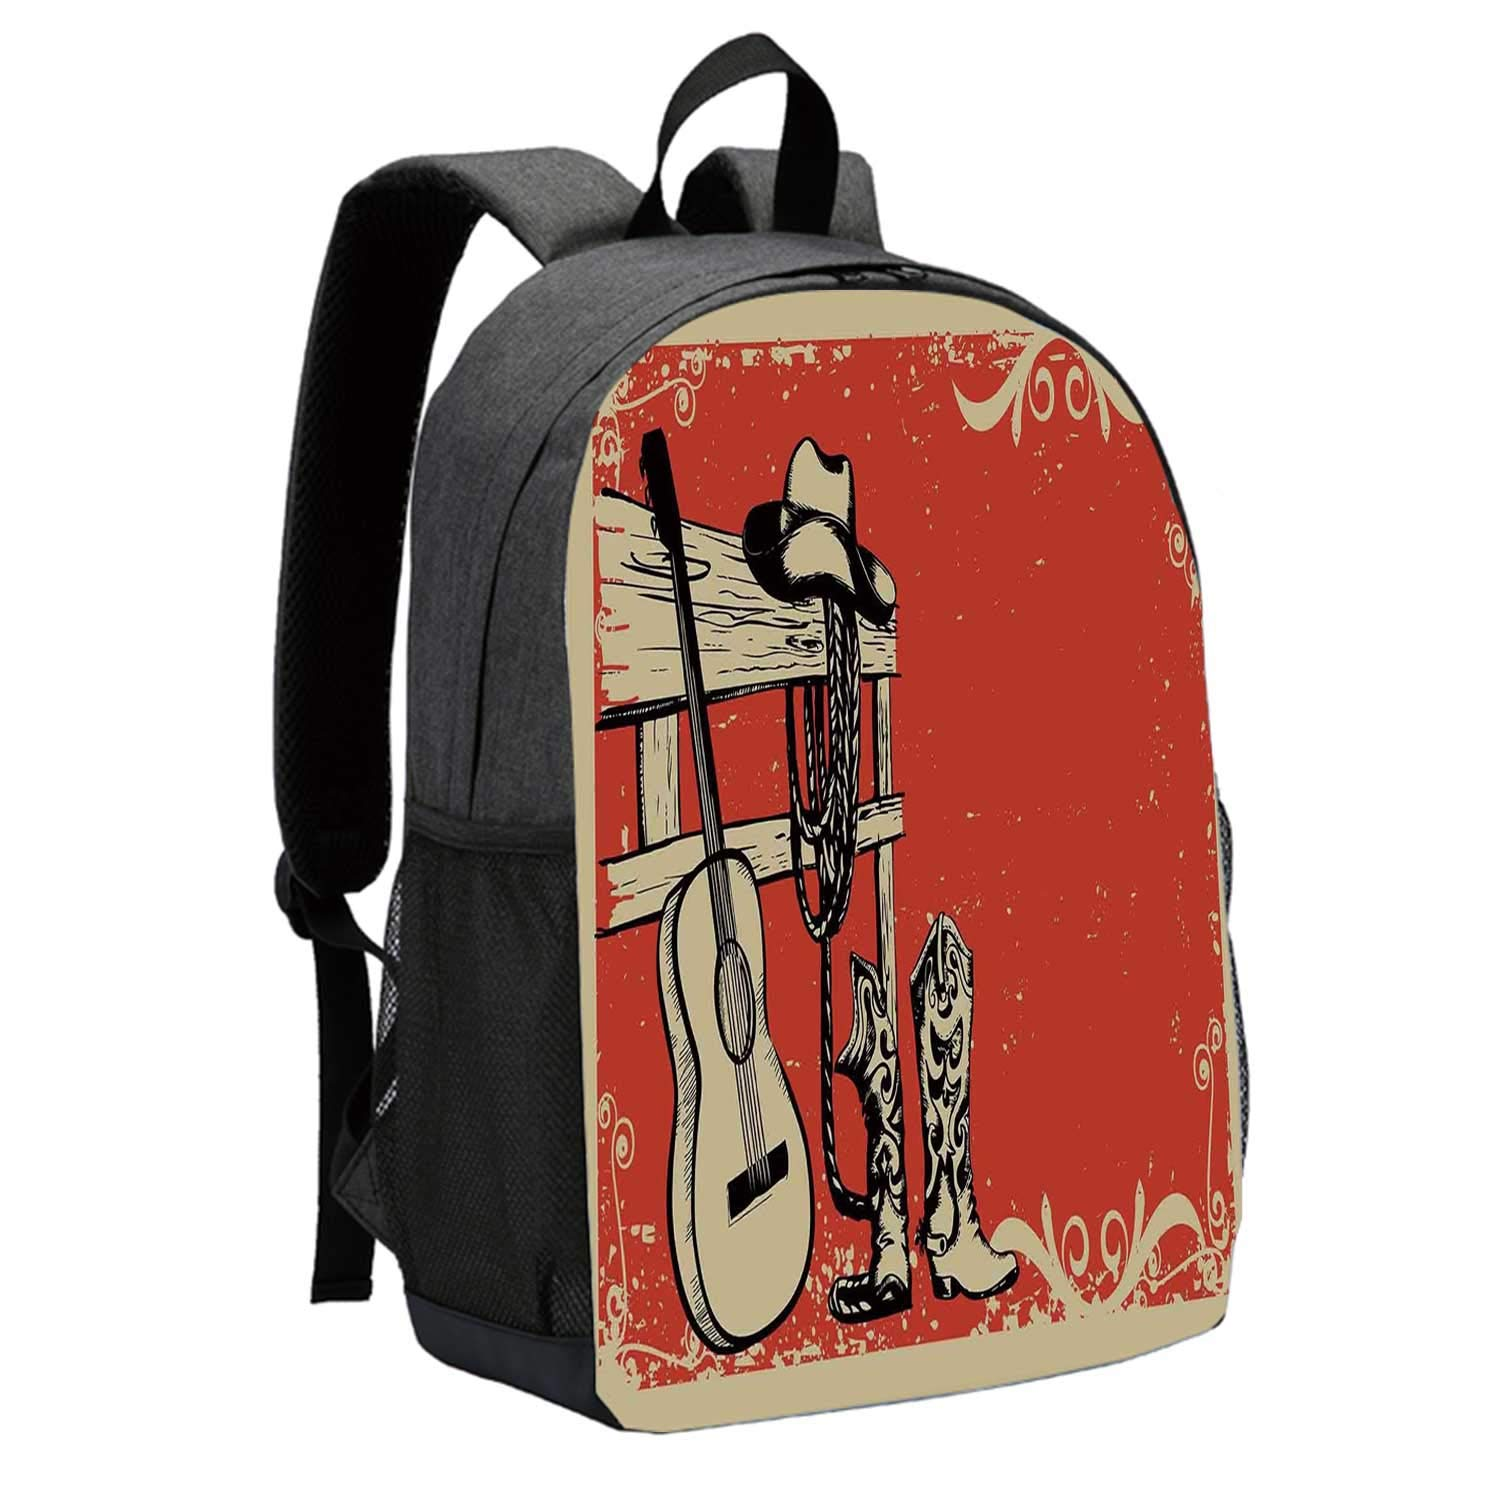 Western Durable Backpack,Image of Wild West Elements with Country Music Guitar and Cowboy Boots Retro Art Decorative for School Travel,12''L x 5''W x 17''H by ALUONI